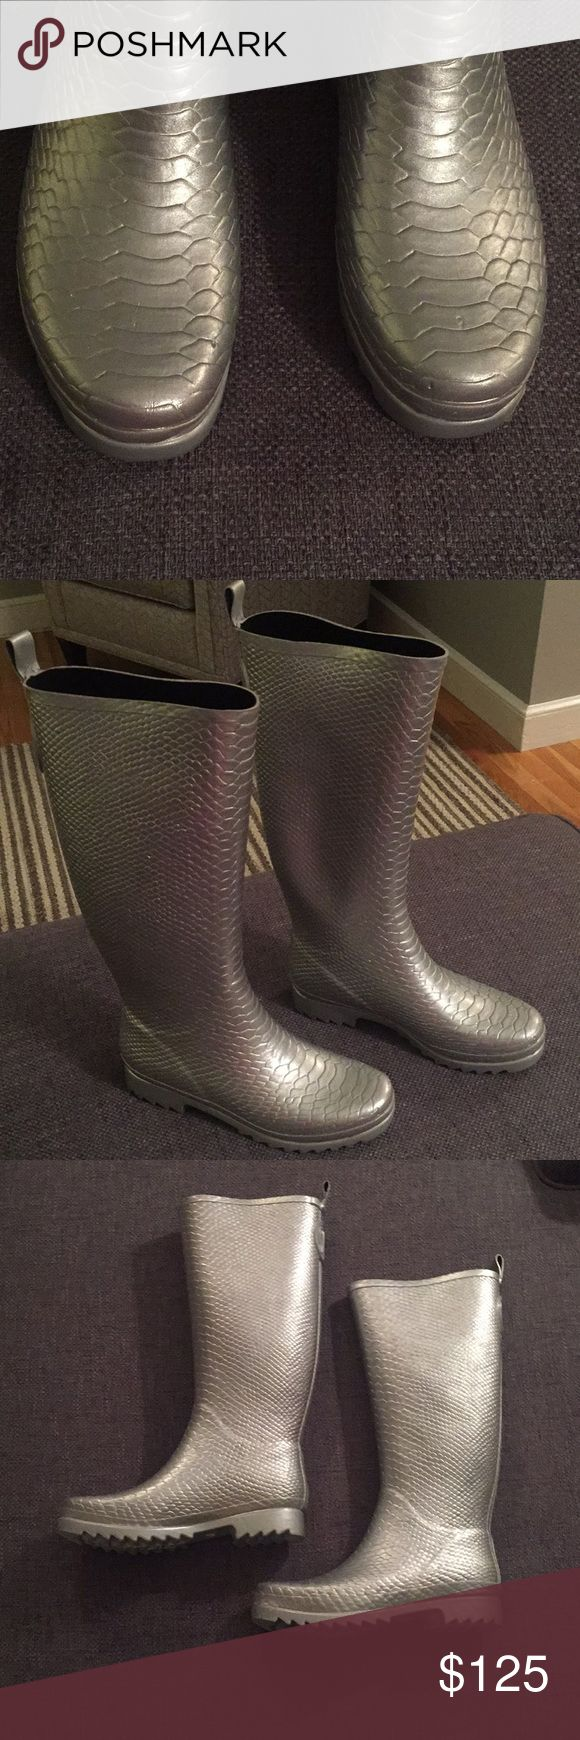 "✨ Stuart Weitzman Embossed Silver Wellies Stuart Weitzman Crocodile Embossed Silver Rain Boots or Wellies. These adorable rubber boots are in excellent condition, worn once, and super comfortable. The inside of the upper shaft measures 14.25"", and height is 15.5"". Stuart Weitzman Shoes Winter & Rain Boots"